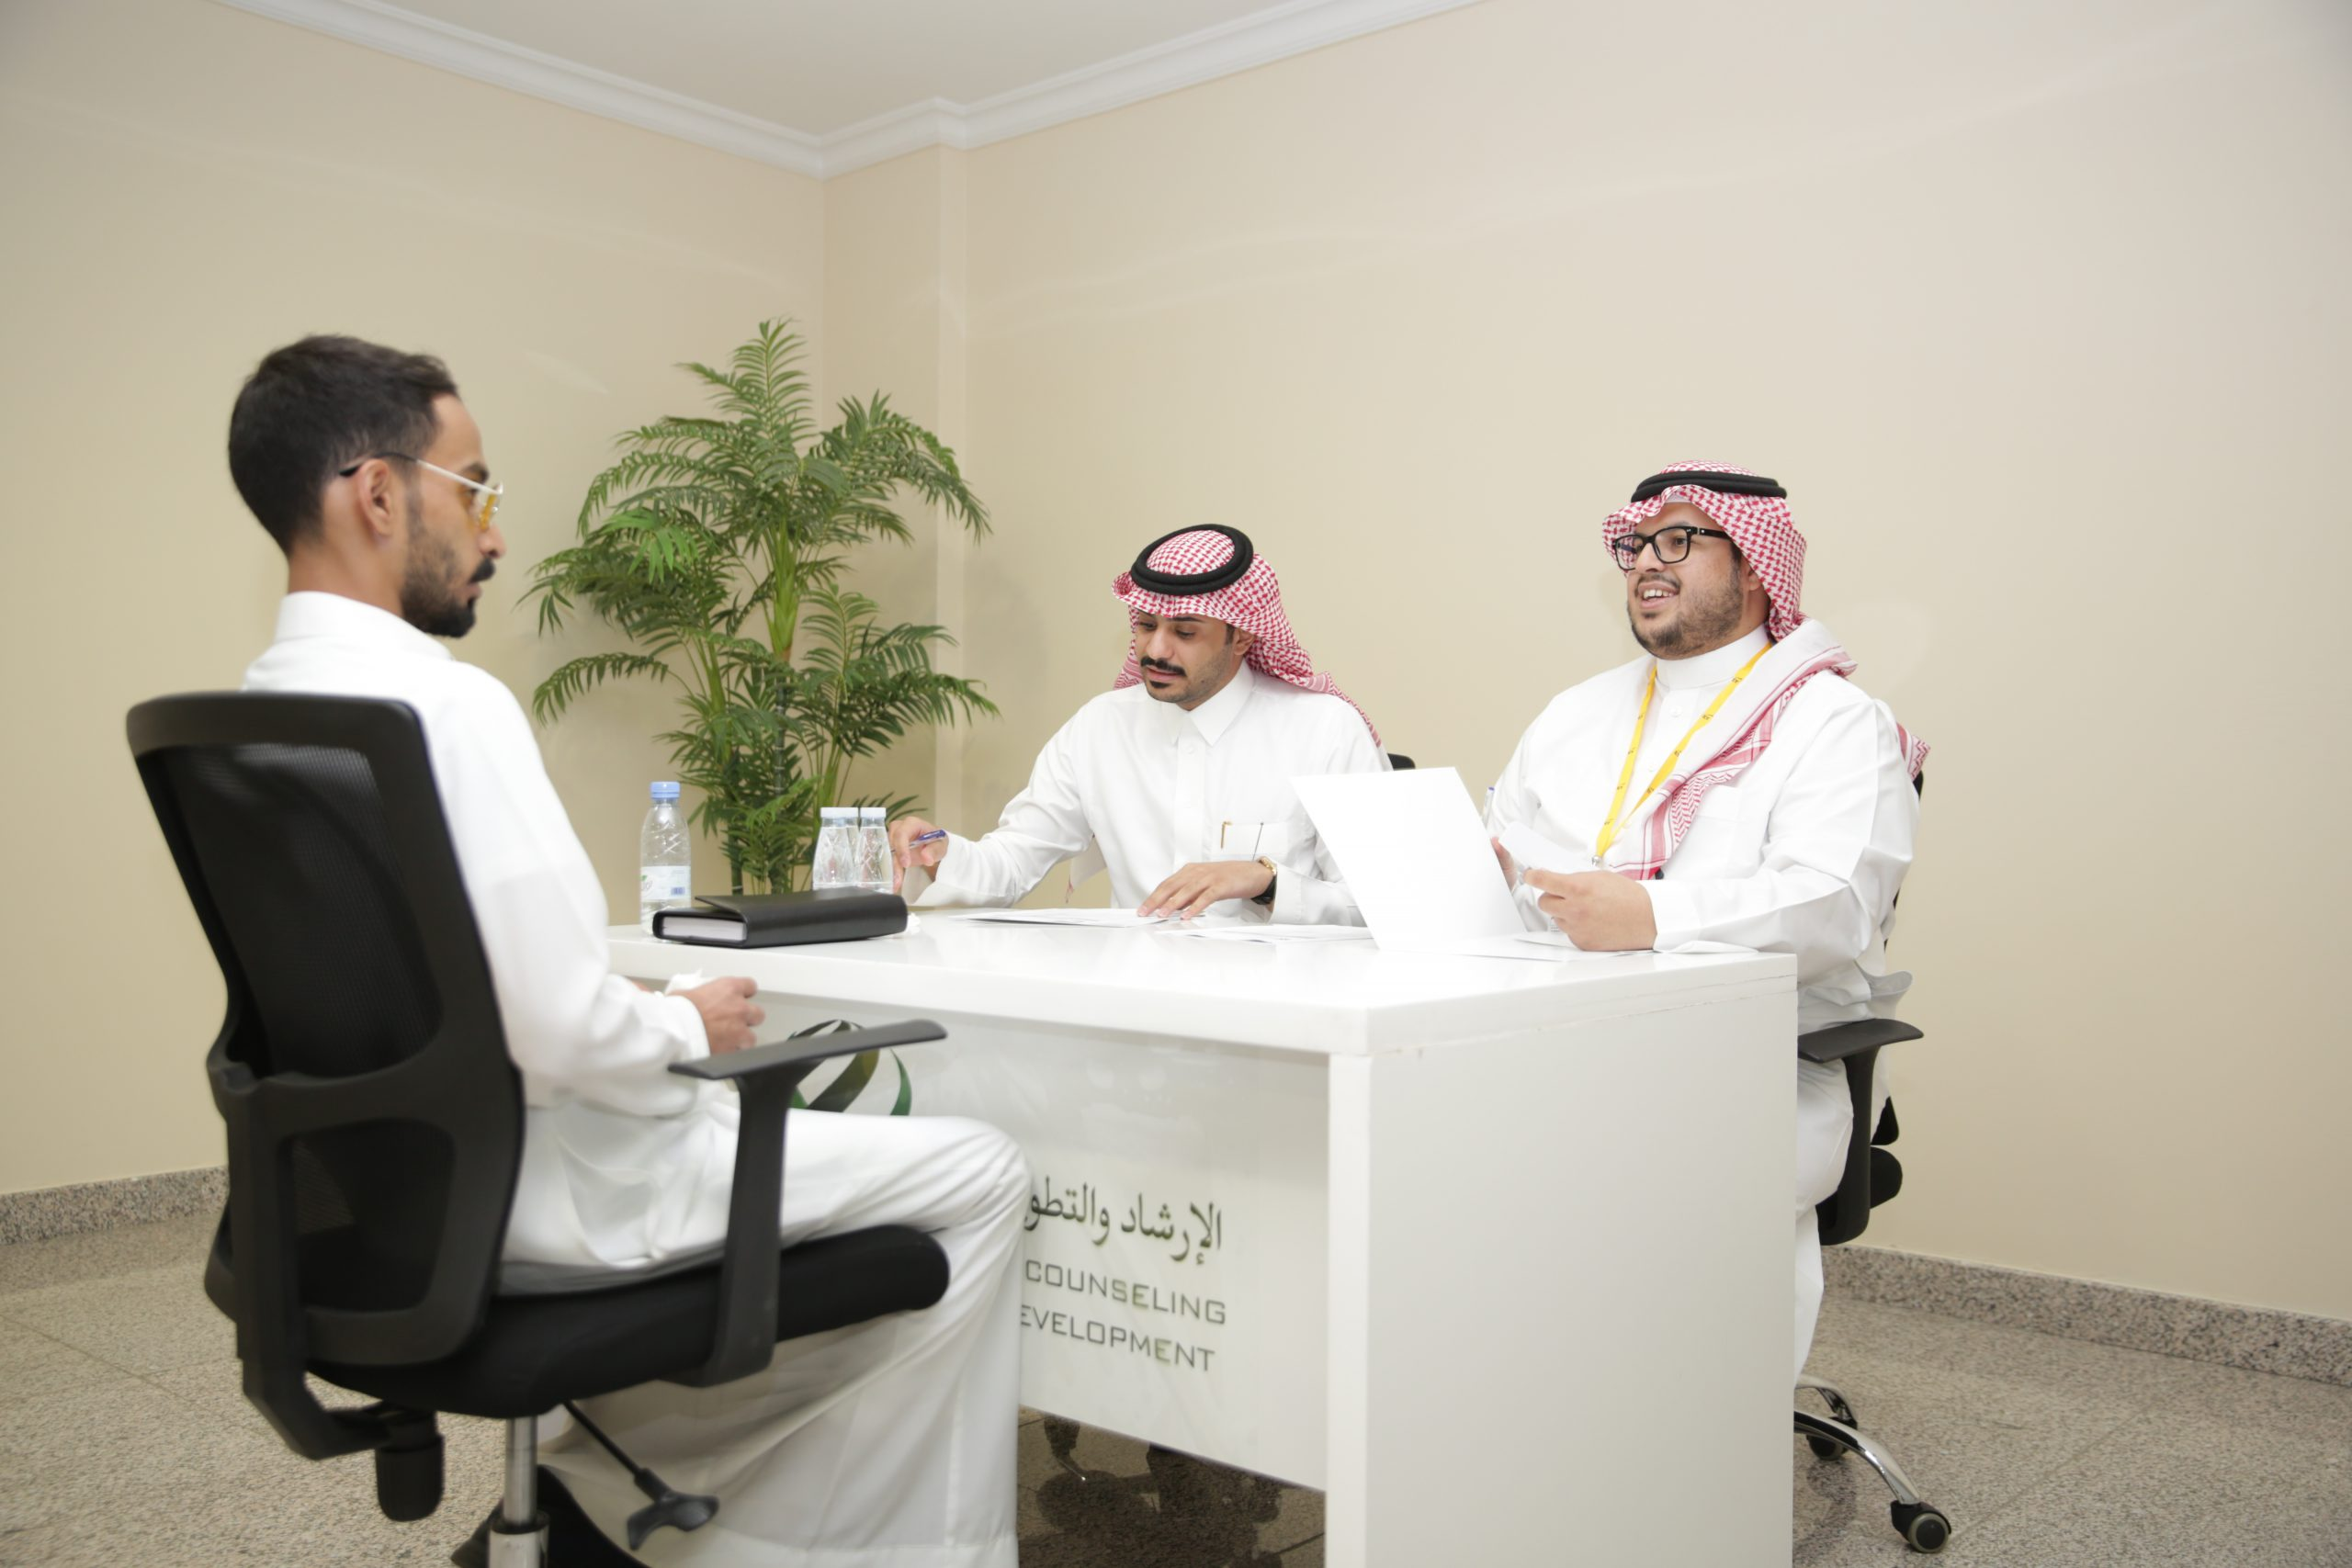 The National Center for Academic Accreditation and Assessment conducts the final site visit for the Human Resource Management Program within the process of programmatic accreditation